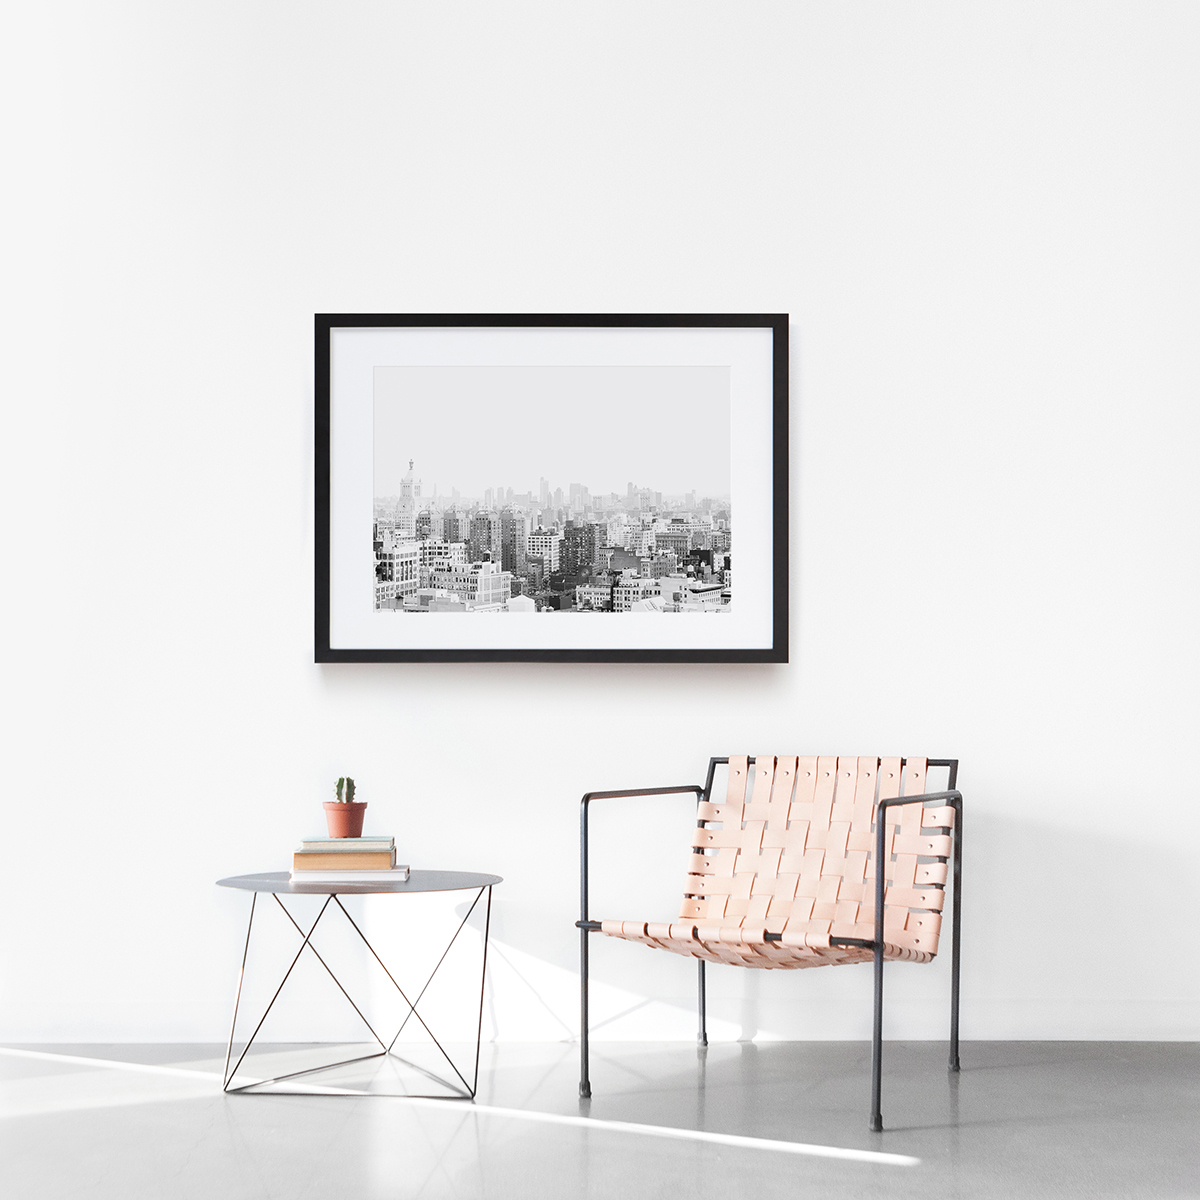 Minimalist interior design scene with chair, sidetable, and frame